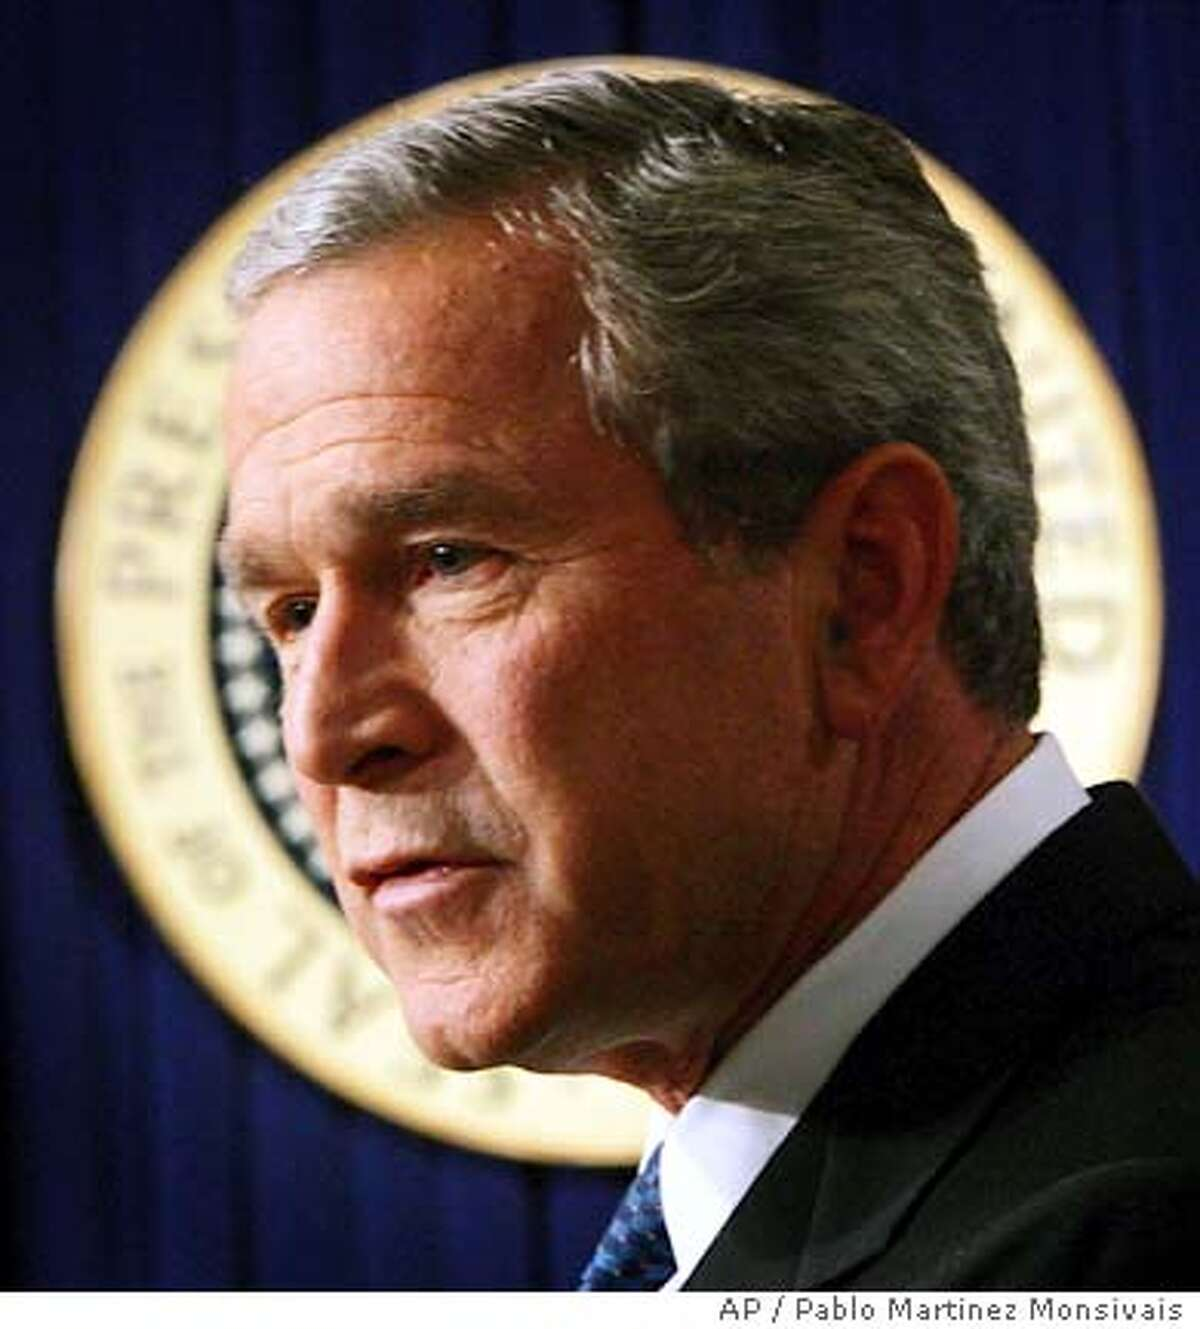 President Bush answers questions during a presss conference at the Eisenhower Executive Office Building of the White House, Thursday, Nov. 4, 2004 in Washington. (AP Photo/Pablo Martinez Monsivais)